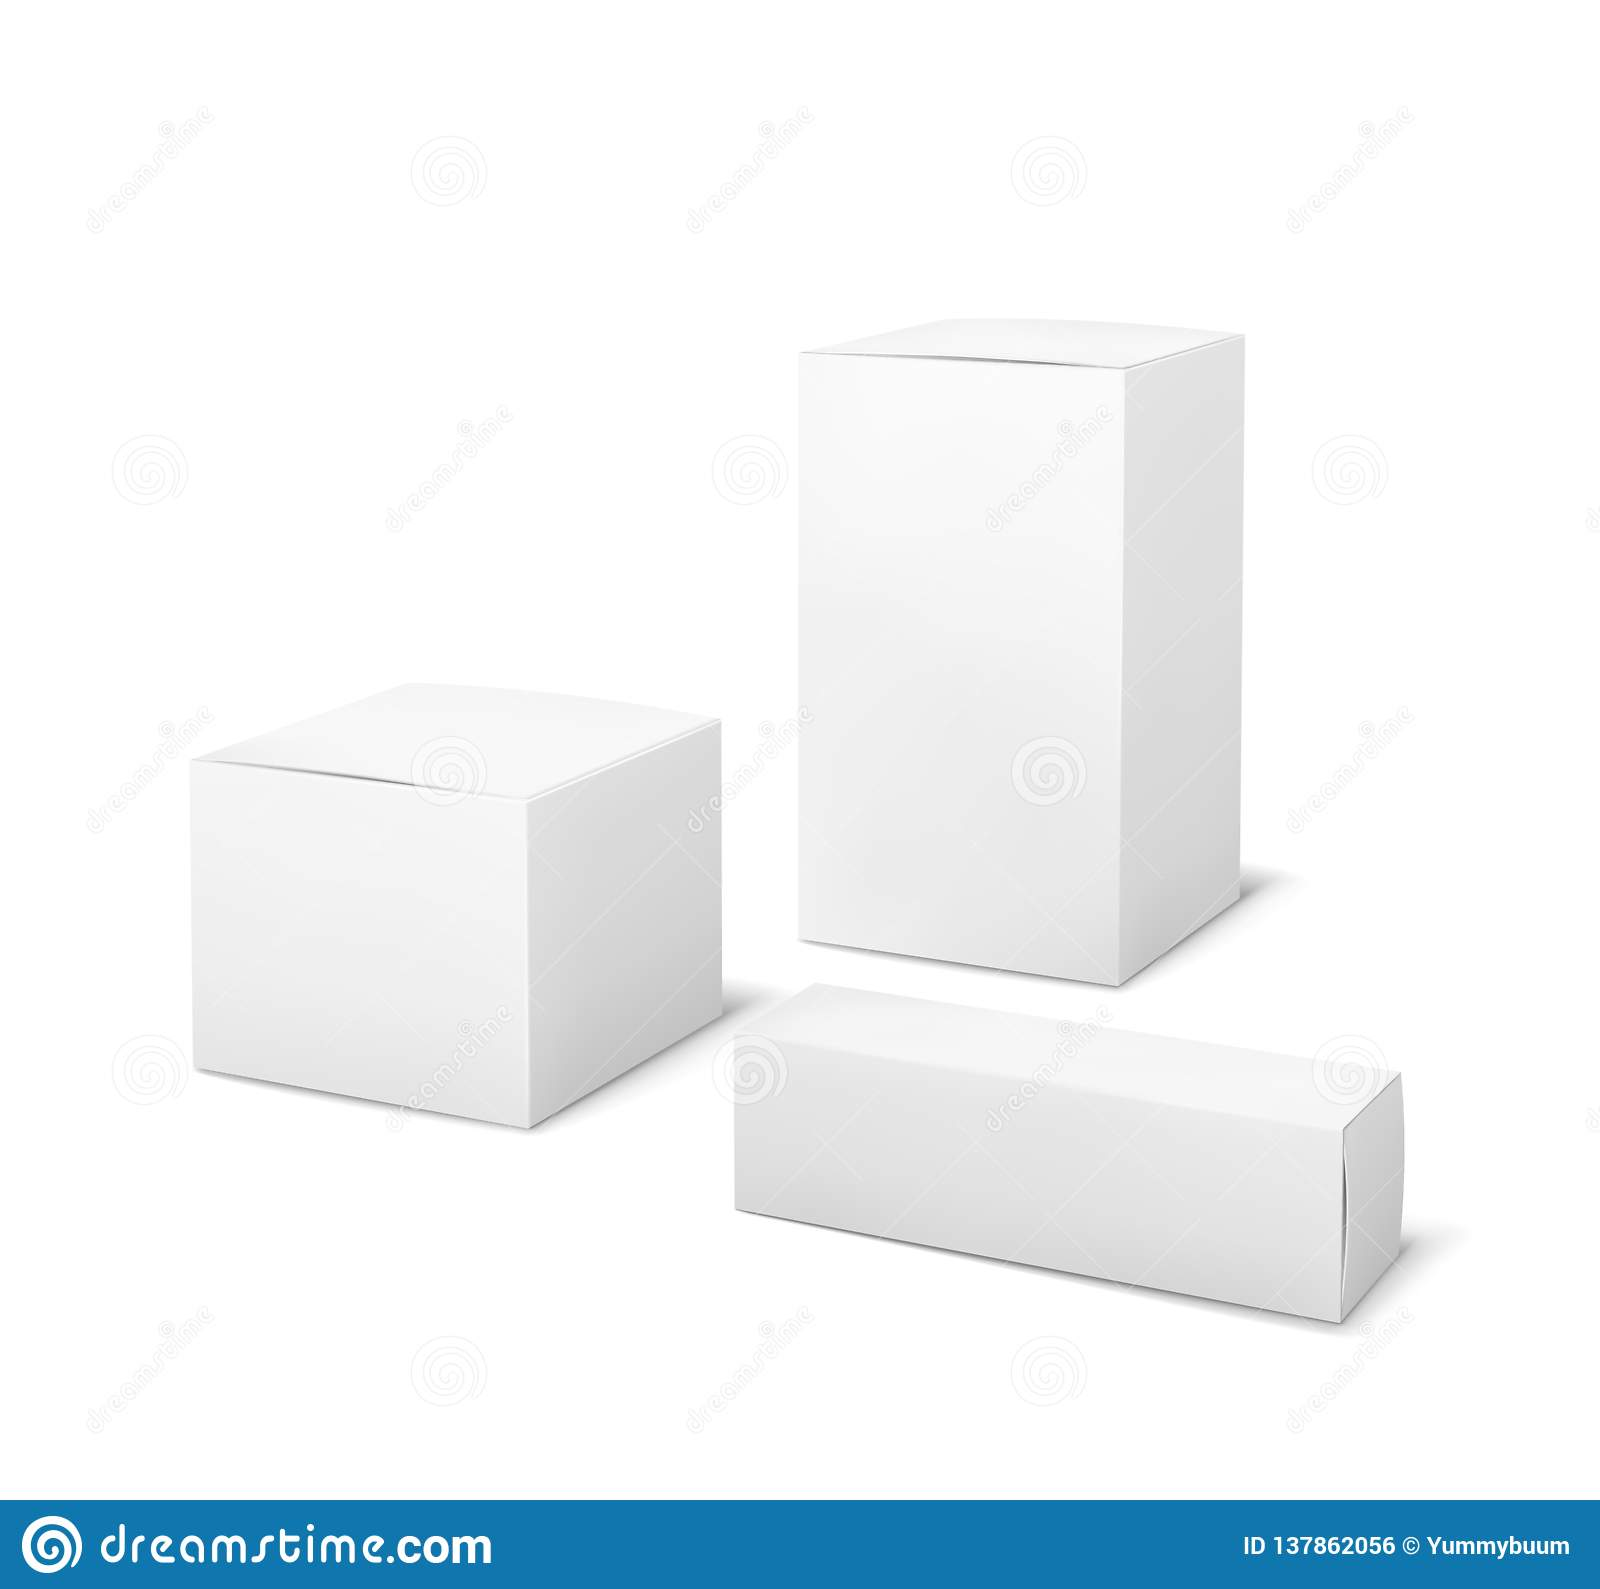 White boxes. Blank package medical and cosmetics box 3d products paper packaging cartons isolated vector mockup